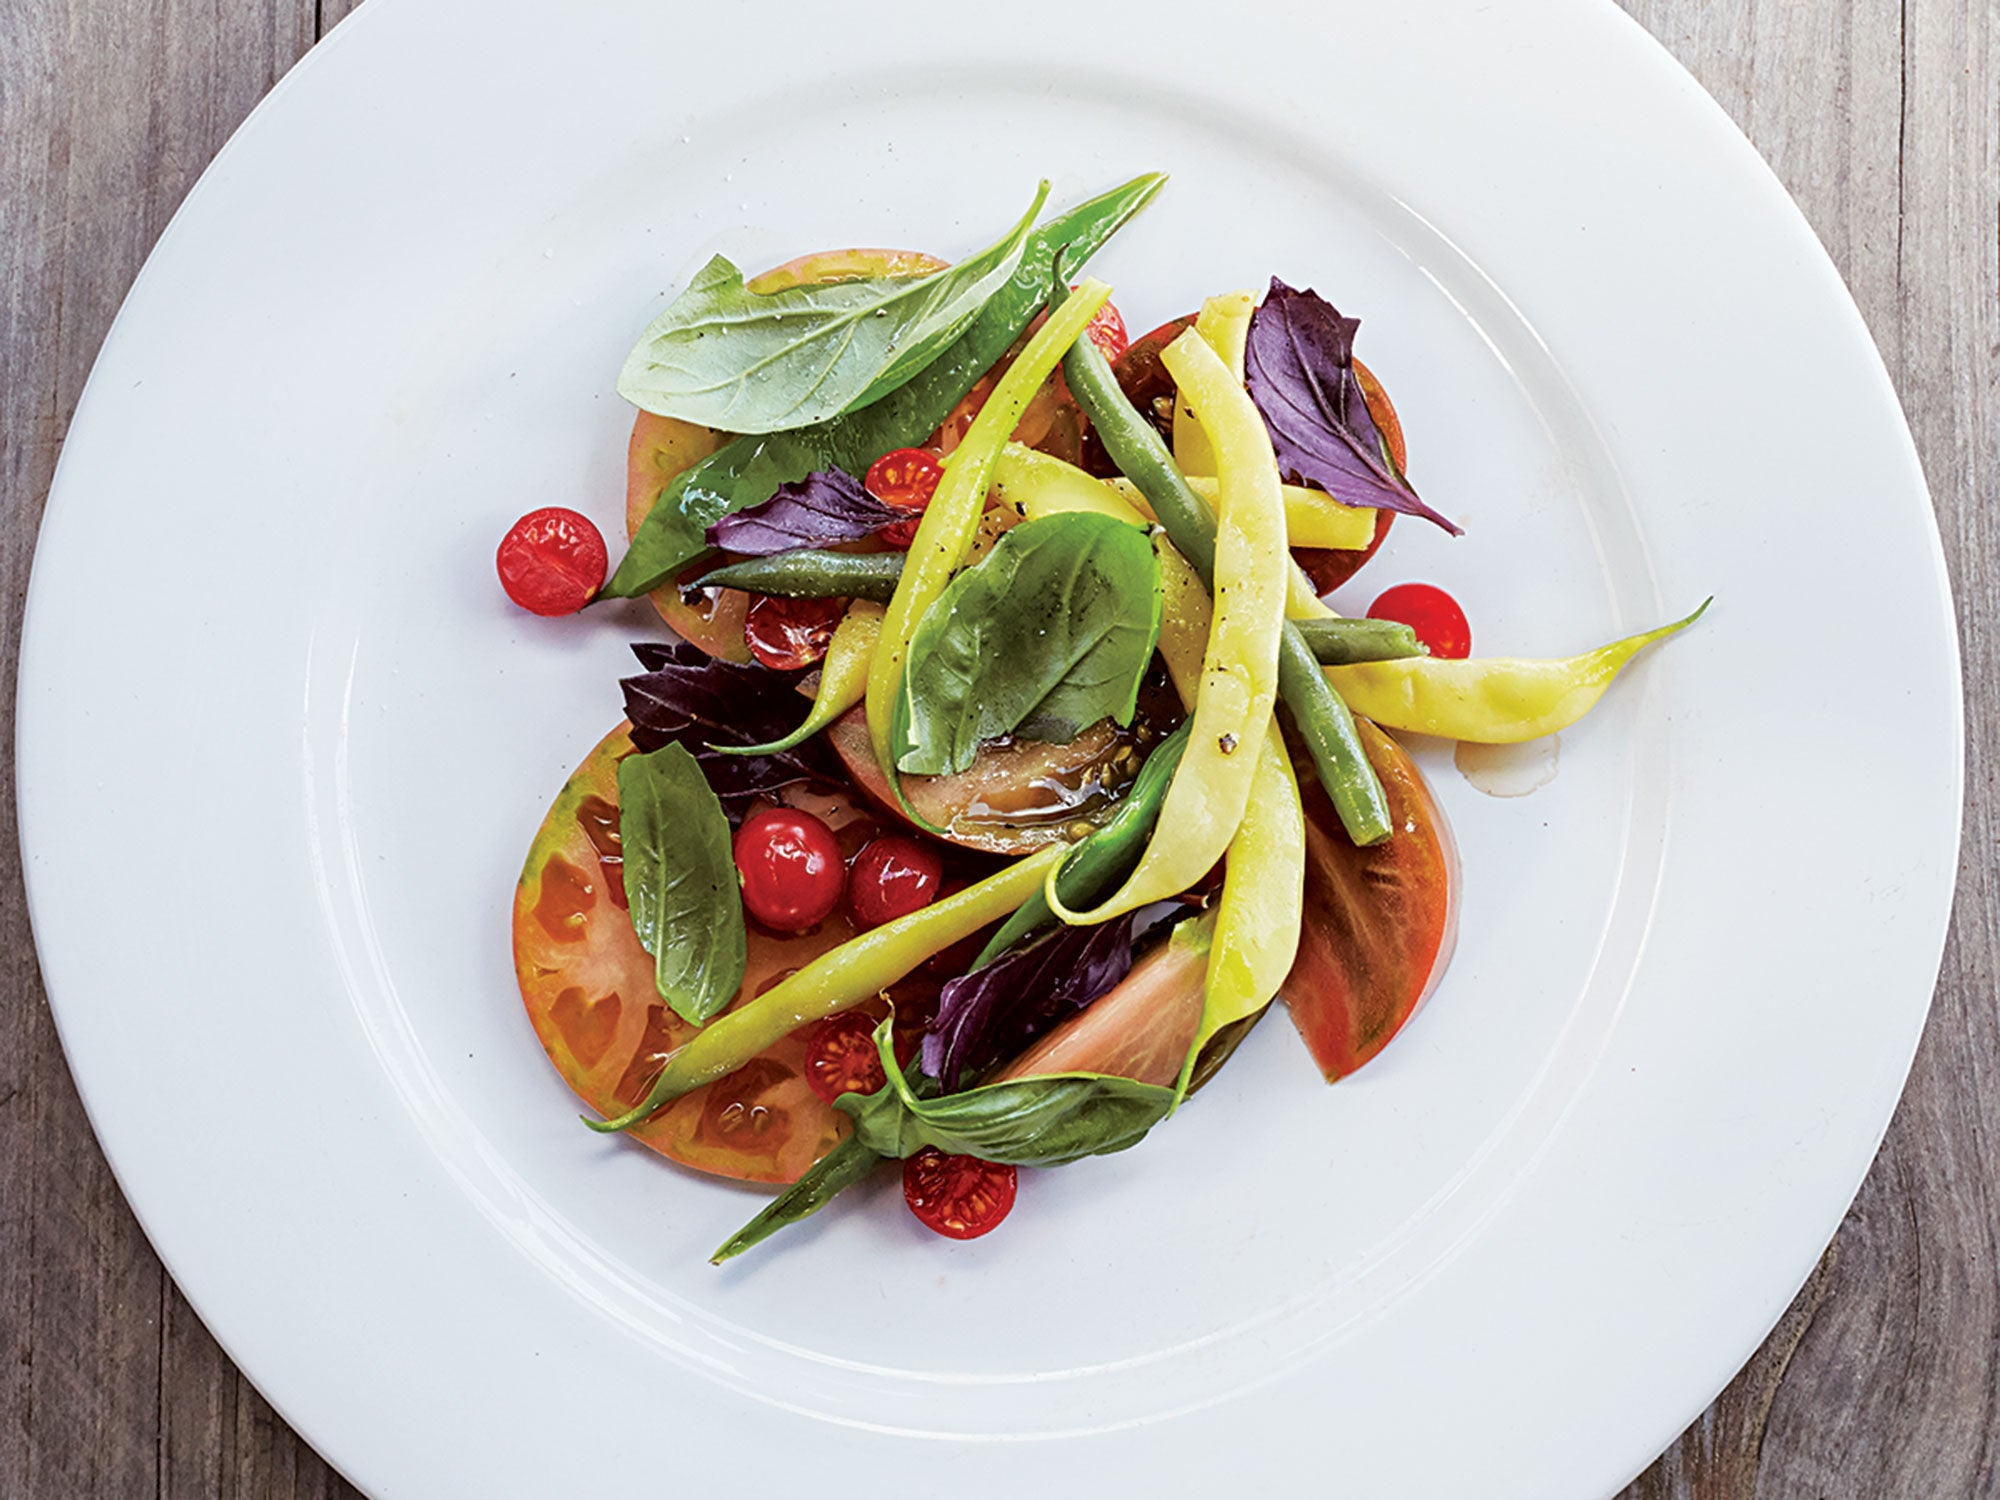 Tomato Salad with Green Beans and Basil